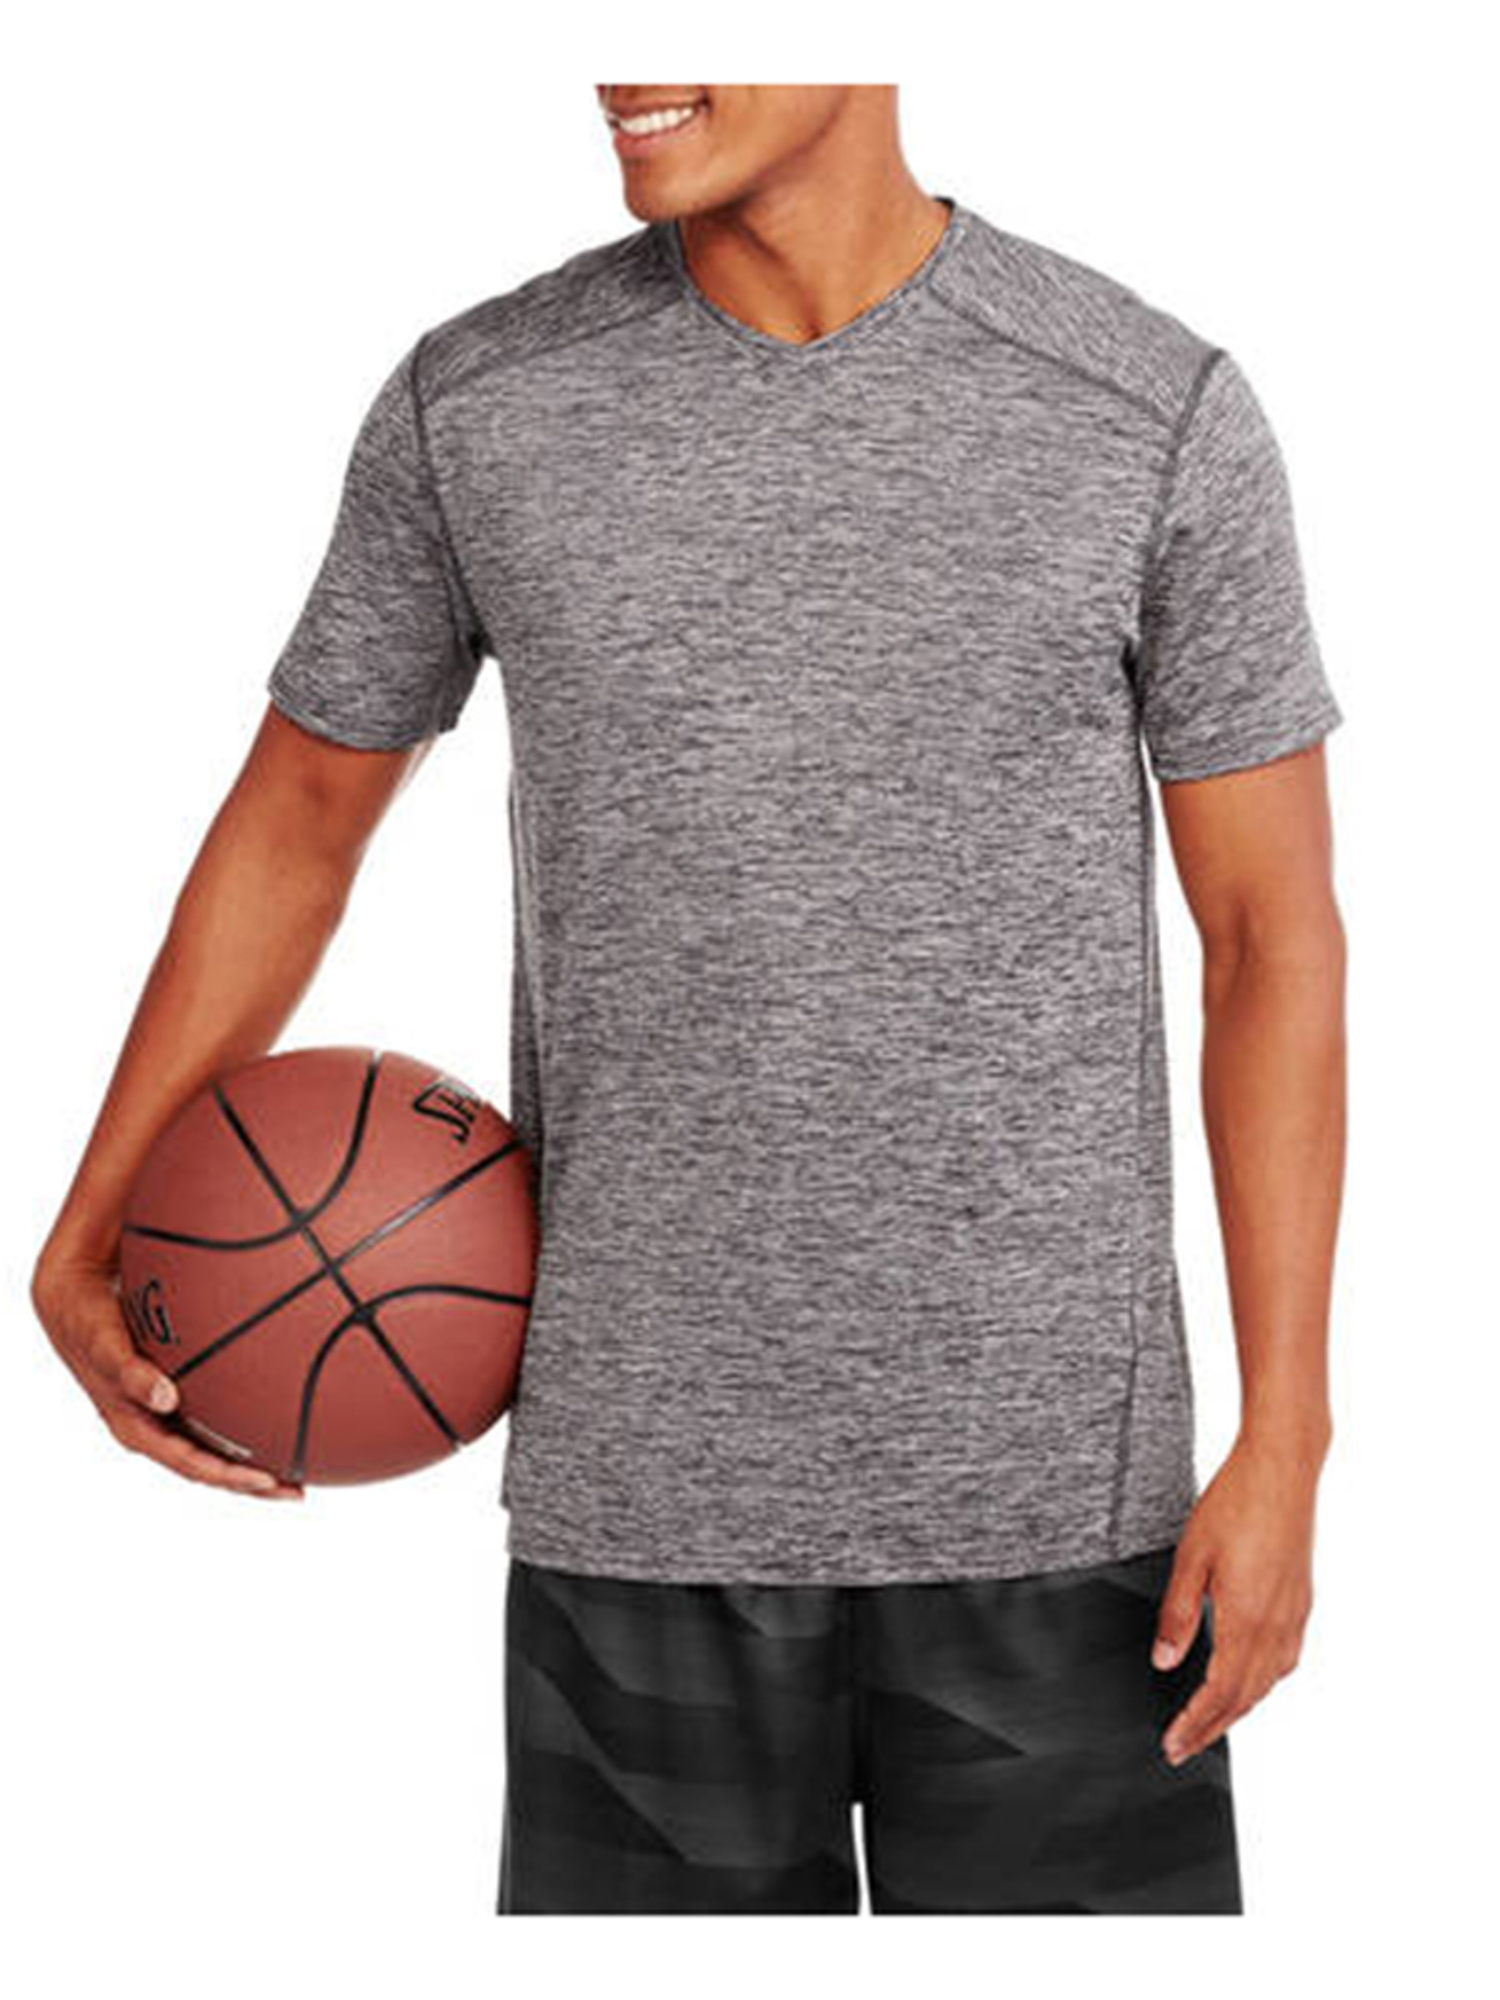 Big Men's Performance V-Neck Short Sleeve Tee